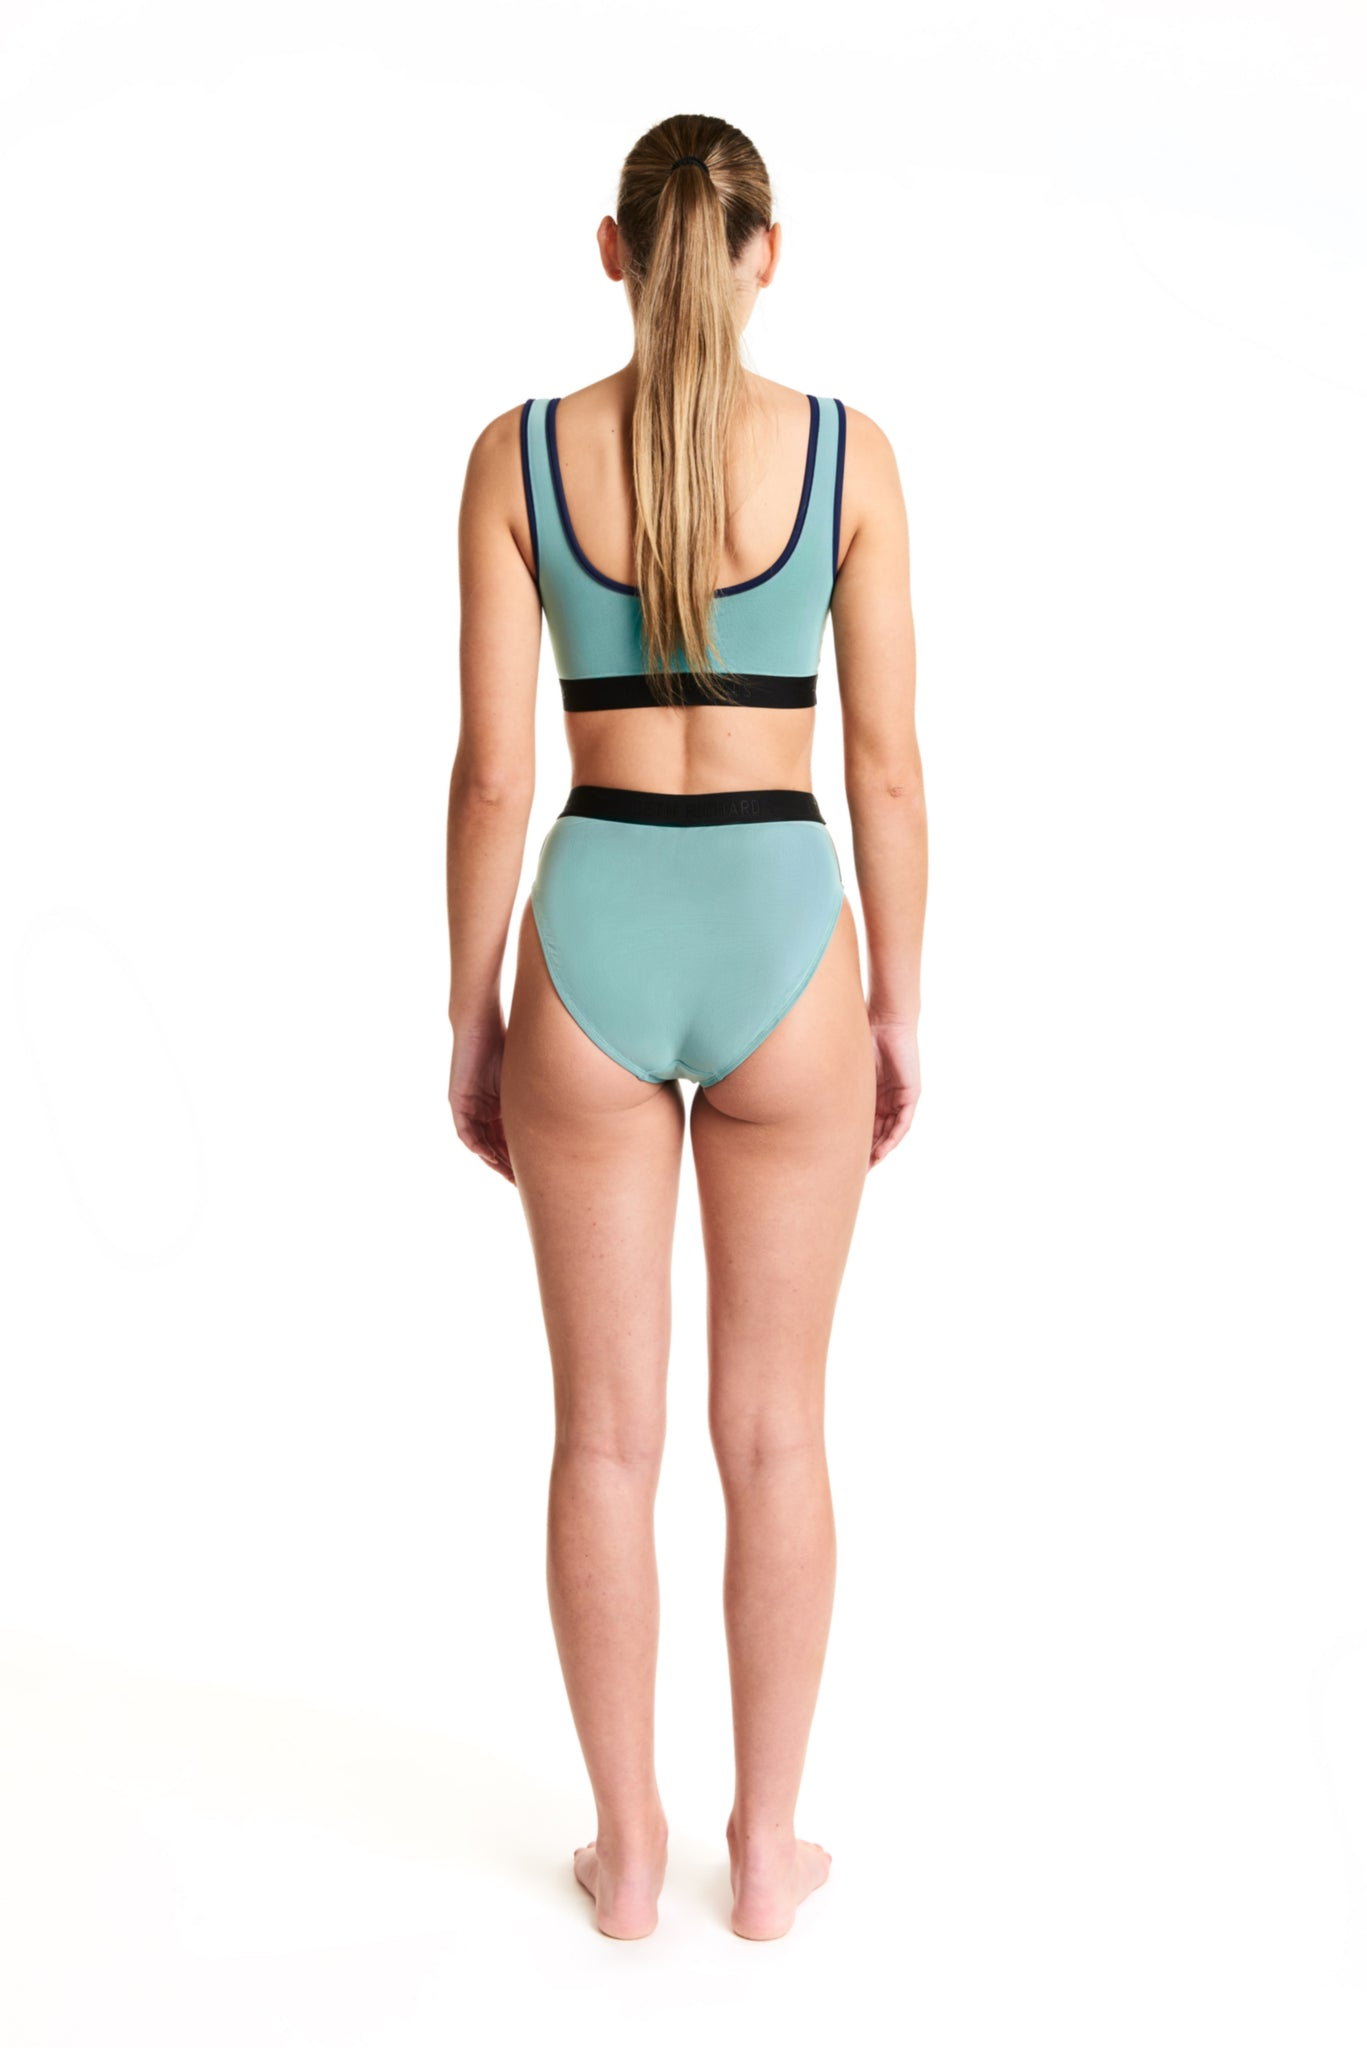 MESH OVERLAY KIM BOTTOM - MINT